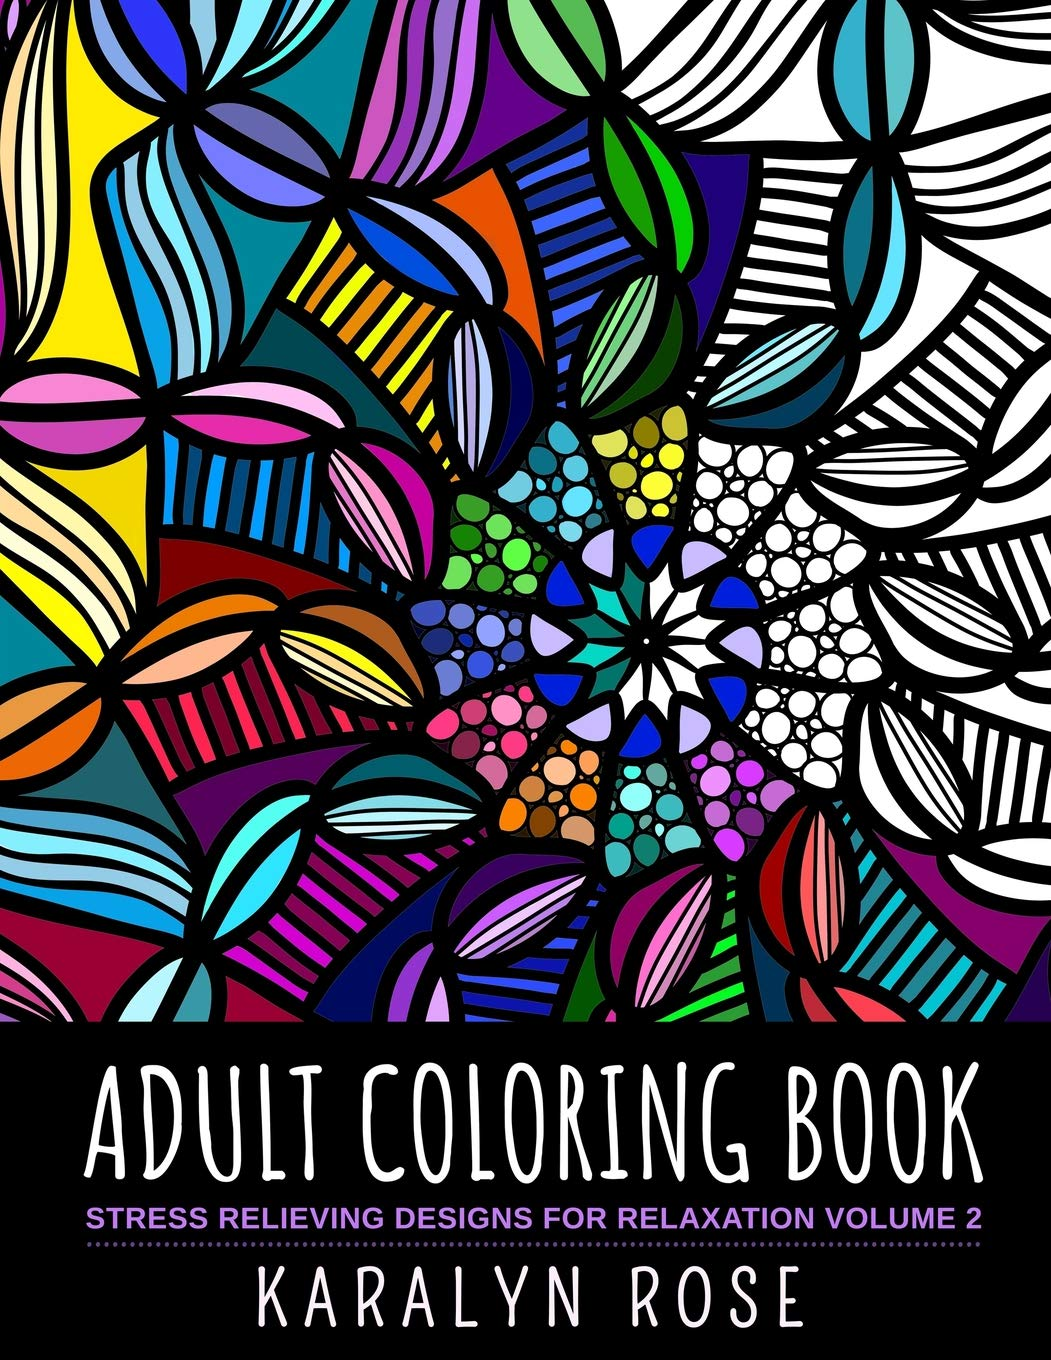 - Adult Coloring Book: Stress Relieving Designs For Relaxation